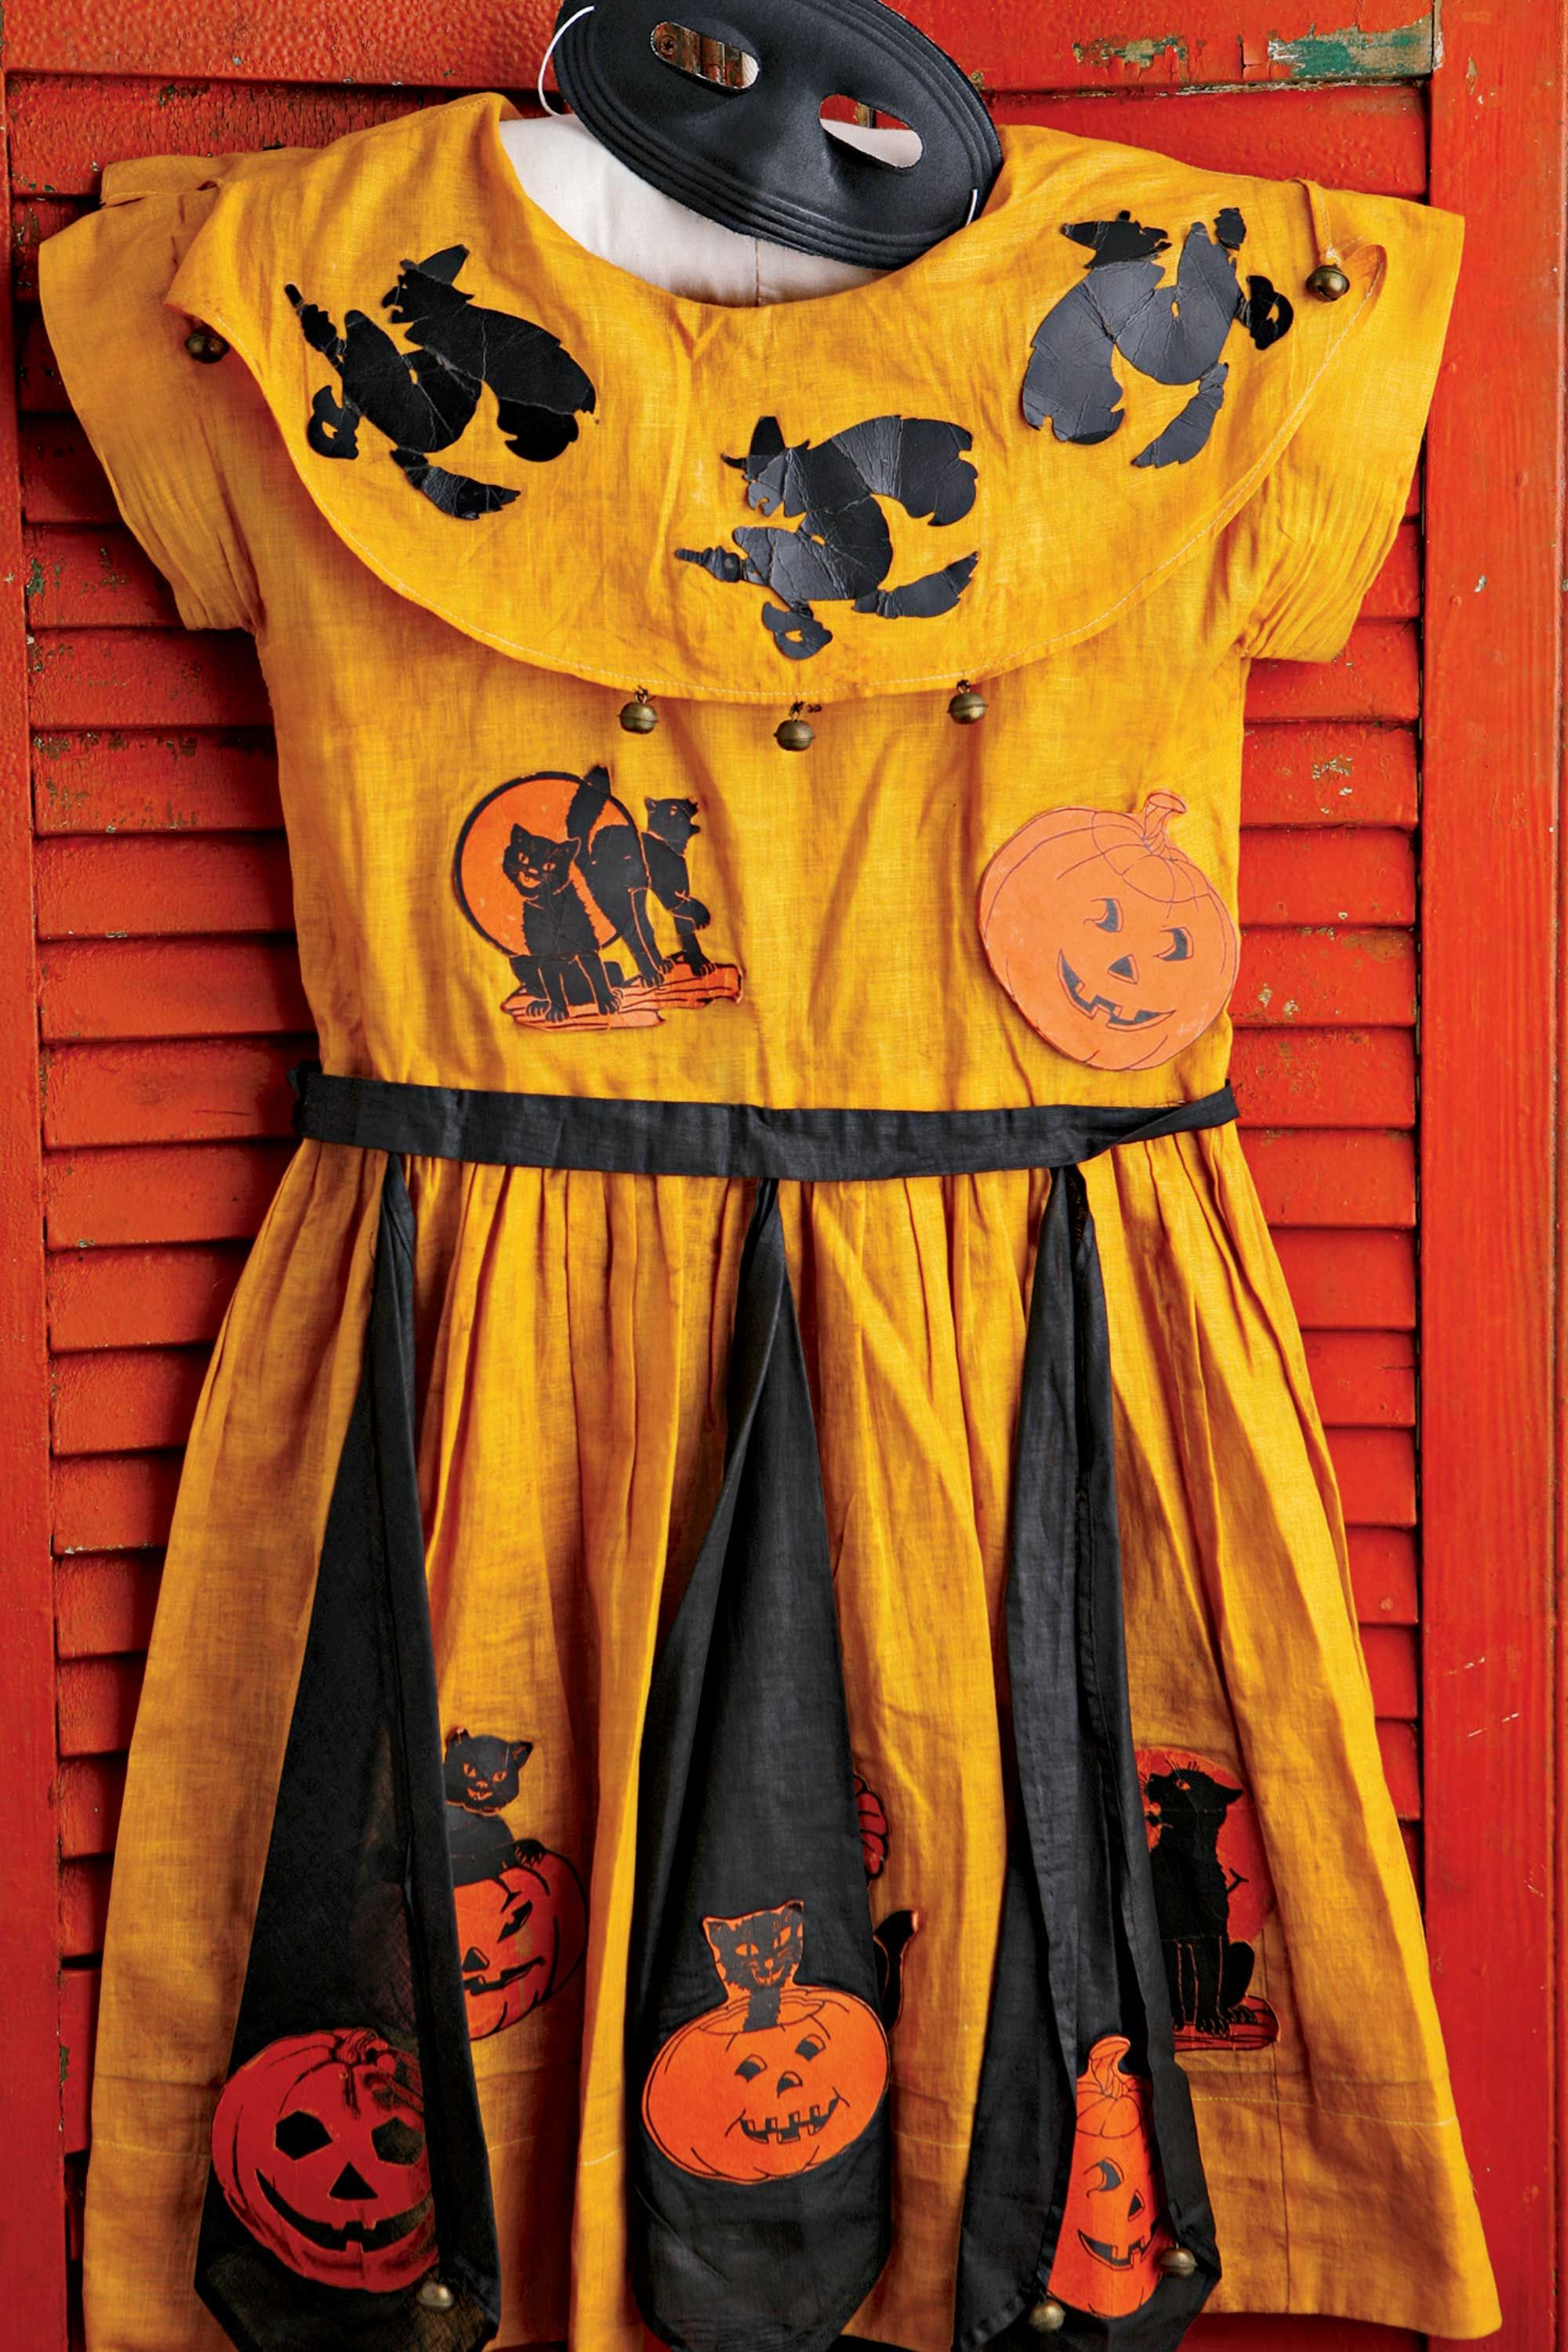 "<p>Prior to the late&nbsp&#x3B;1940s, Halloween costumes, like this circa 1917 frock, were&nbsp&#x3B;homemade. These days, the market&nbsp&#x3B;prices can start&nbsp&#x3B;at $75 for basic vintage costumes in mint&nbsp&#x3B;condition and go as high as $1,500&nbsp&#x3B;for ones based on cartoon characters, television&nbsp&#x3B;stars, or political subjects.&nbsp&#x3B;</p><p><span data-redactor-tag=""span"" data-verified=""redactor""></span></p>"